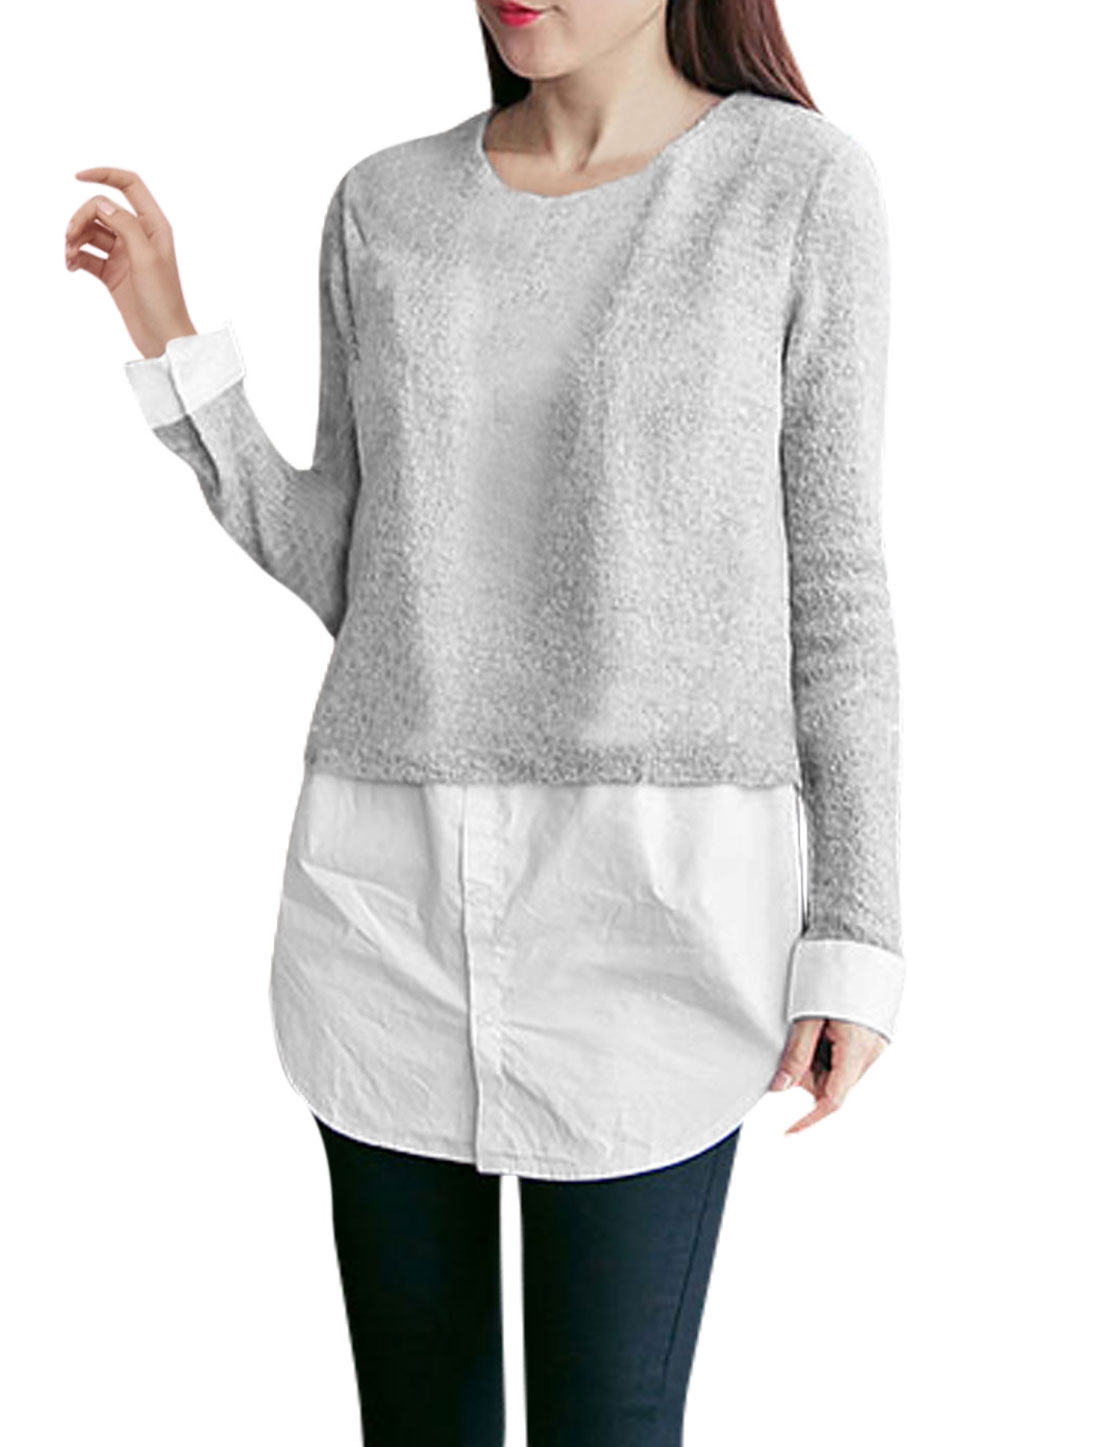 Women Panel Layered Tunic Knit Shirt Light Gray XS